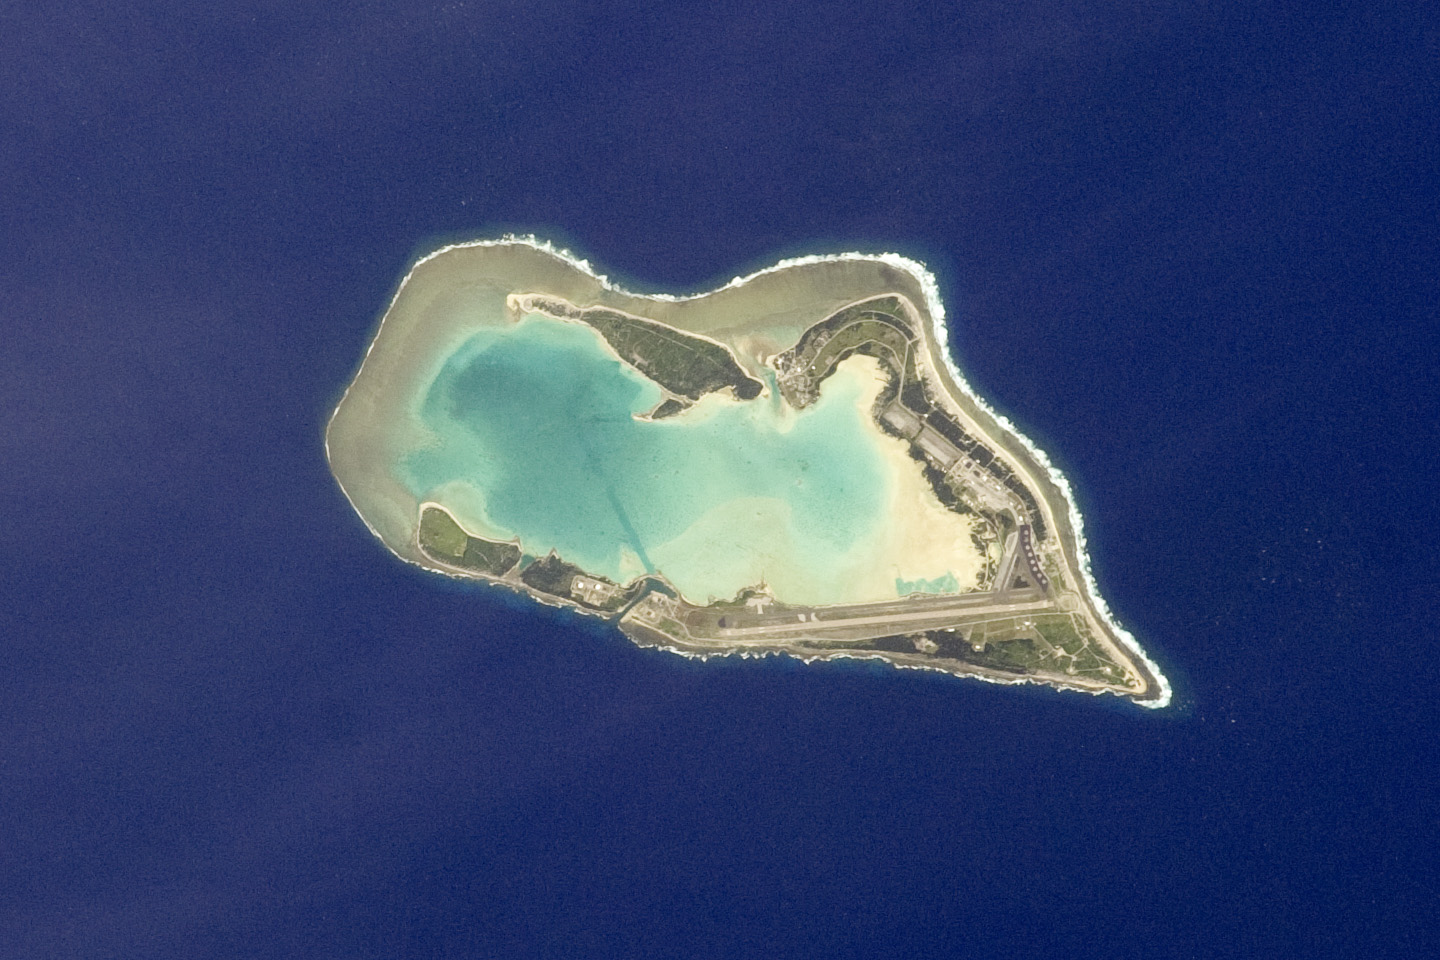 Today's Image of the Day comes courtesy of the NASA Earth Observatory and features a look at Wake Island in the Pacific Ocean.